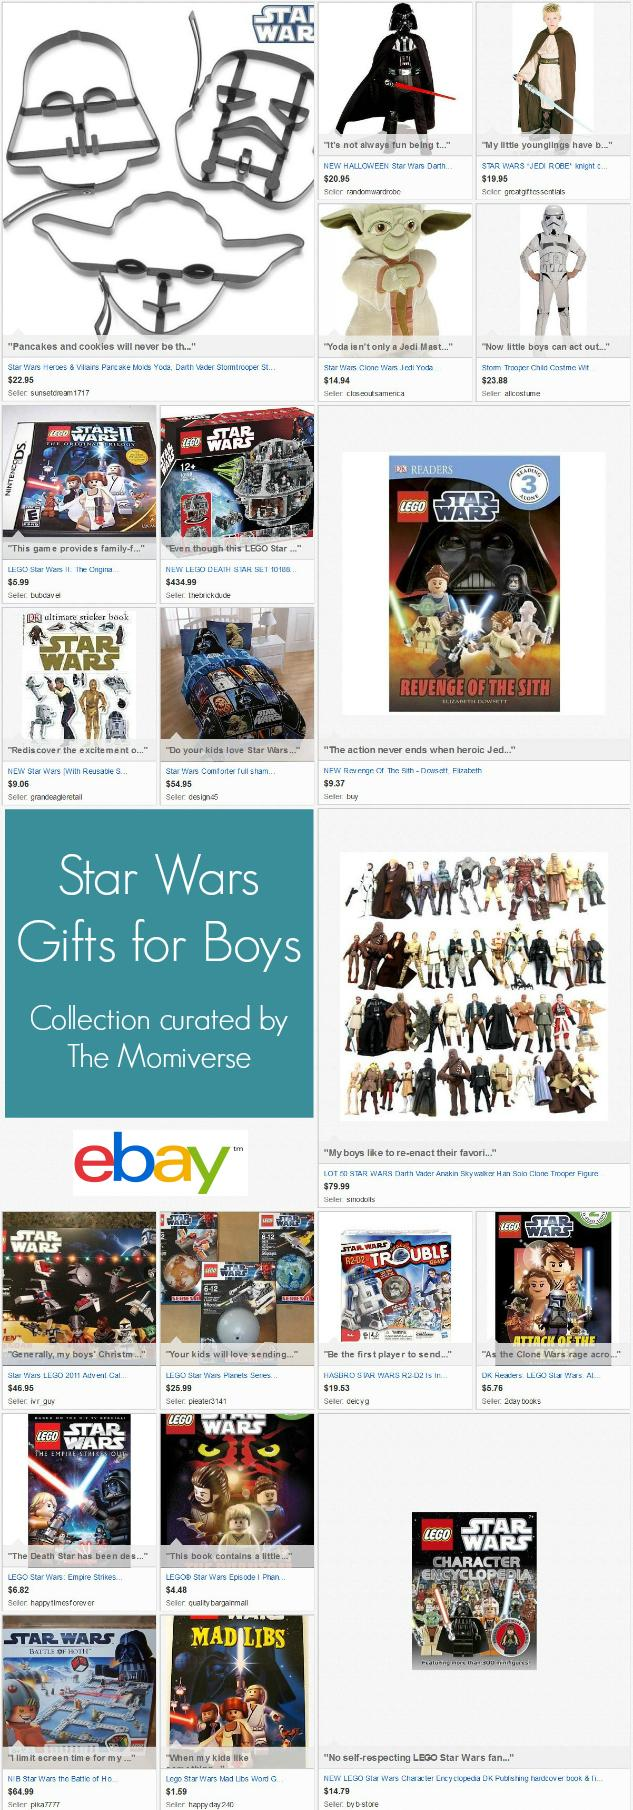 Star Wars Gifts for Boys | | eBay Collection curated by The Momiverse | Gift Guide